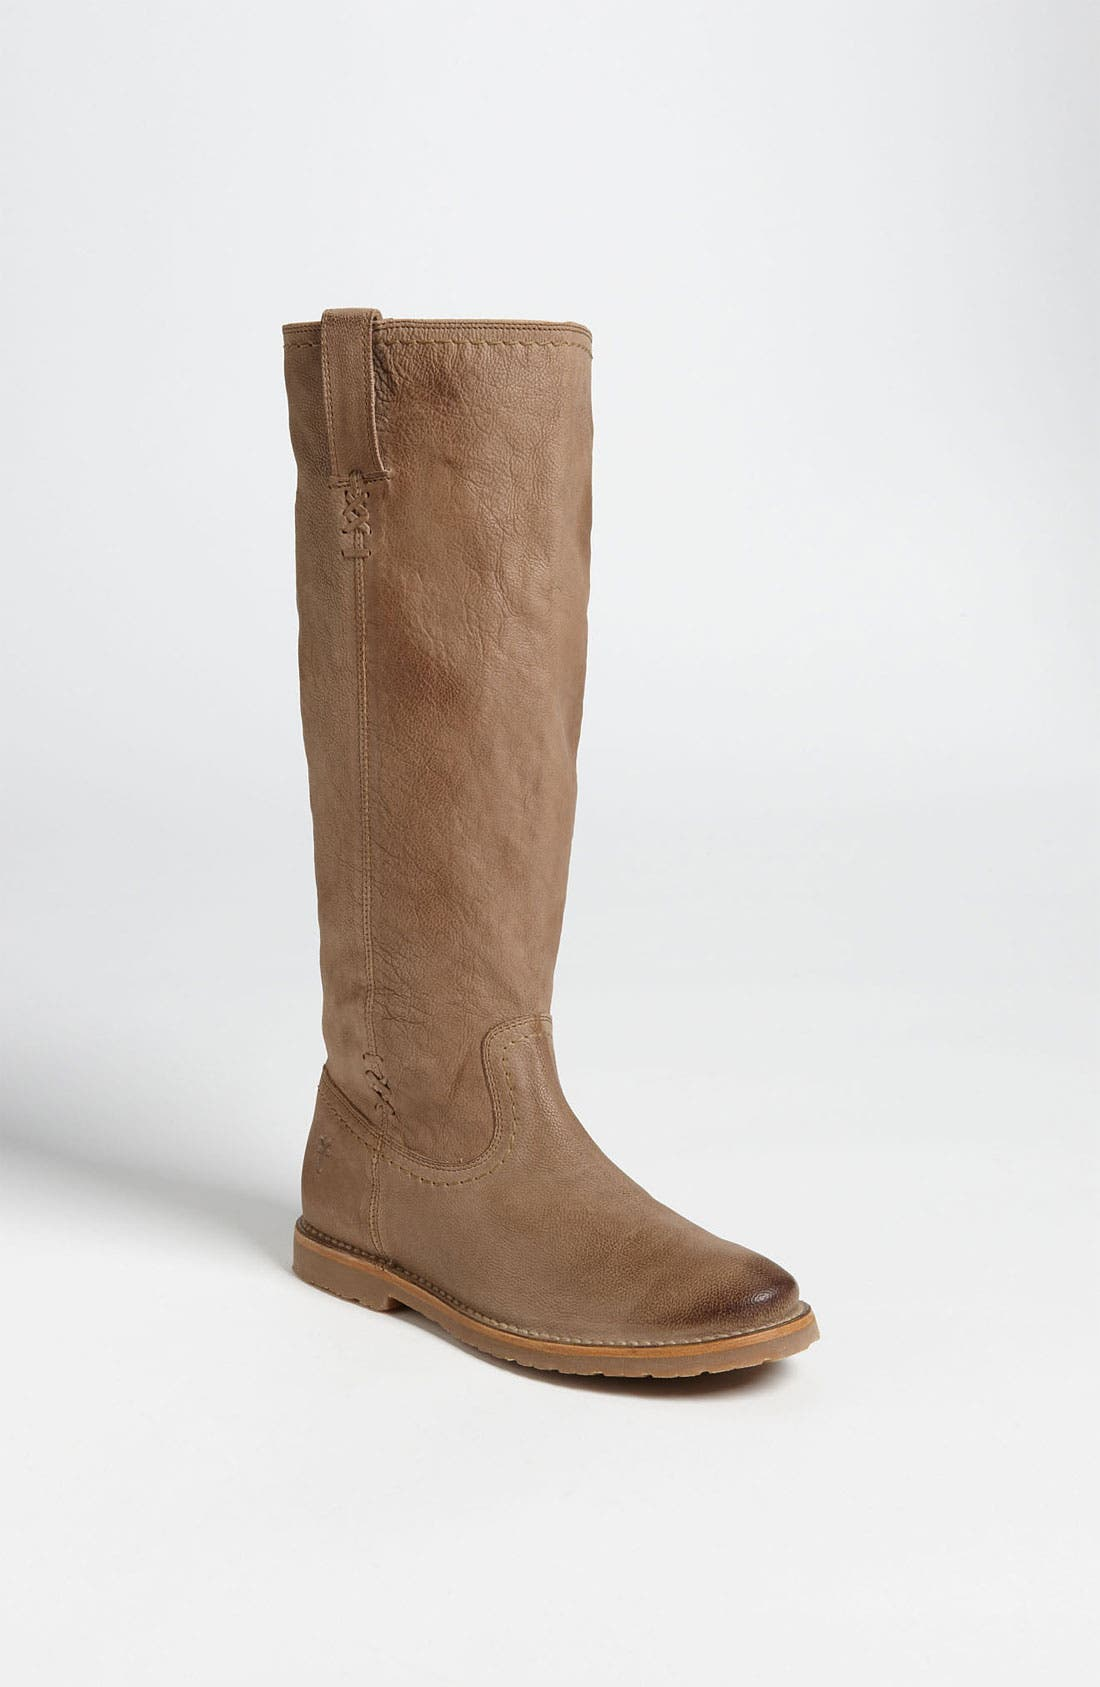 Alternate Image 1 Selected - Frye 'Celia' Boot